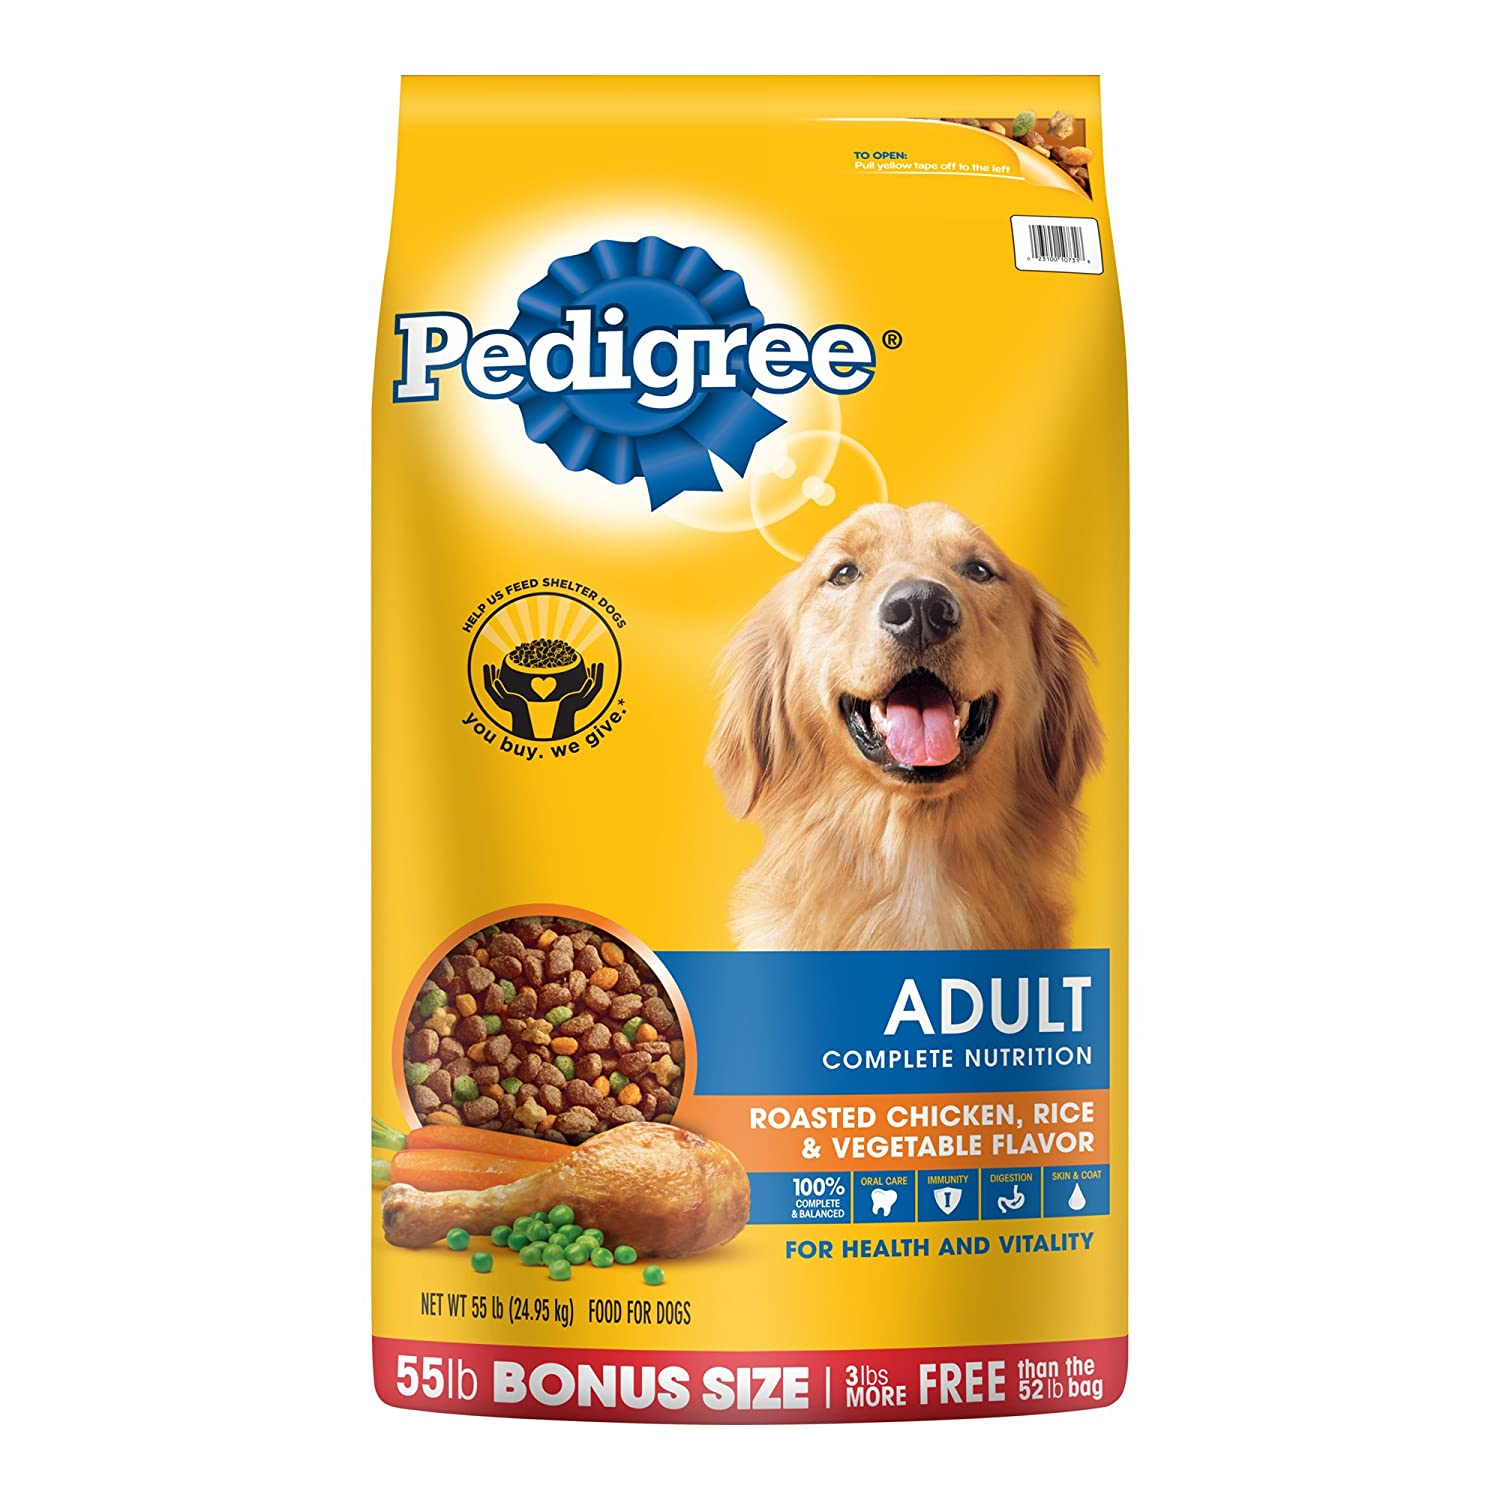 Pedigree Adult Roasted Chicken, Rice Vegetable Flavor Dry Dog Food 55 Pounds